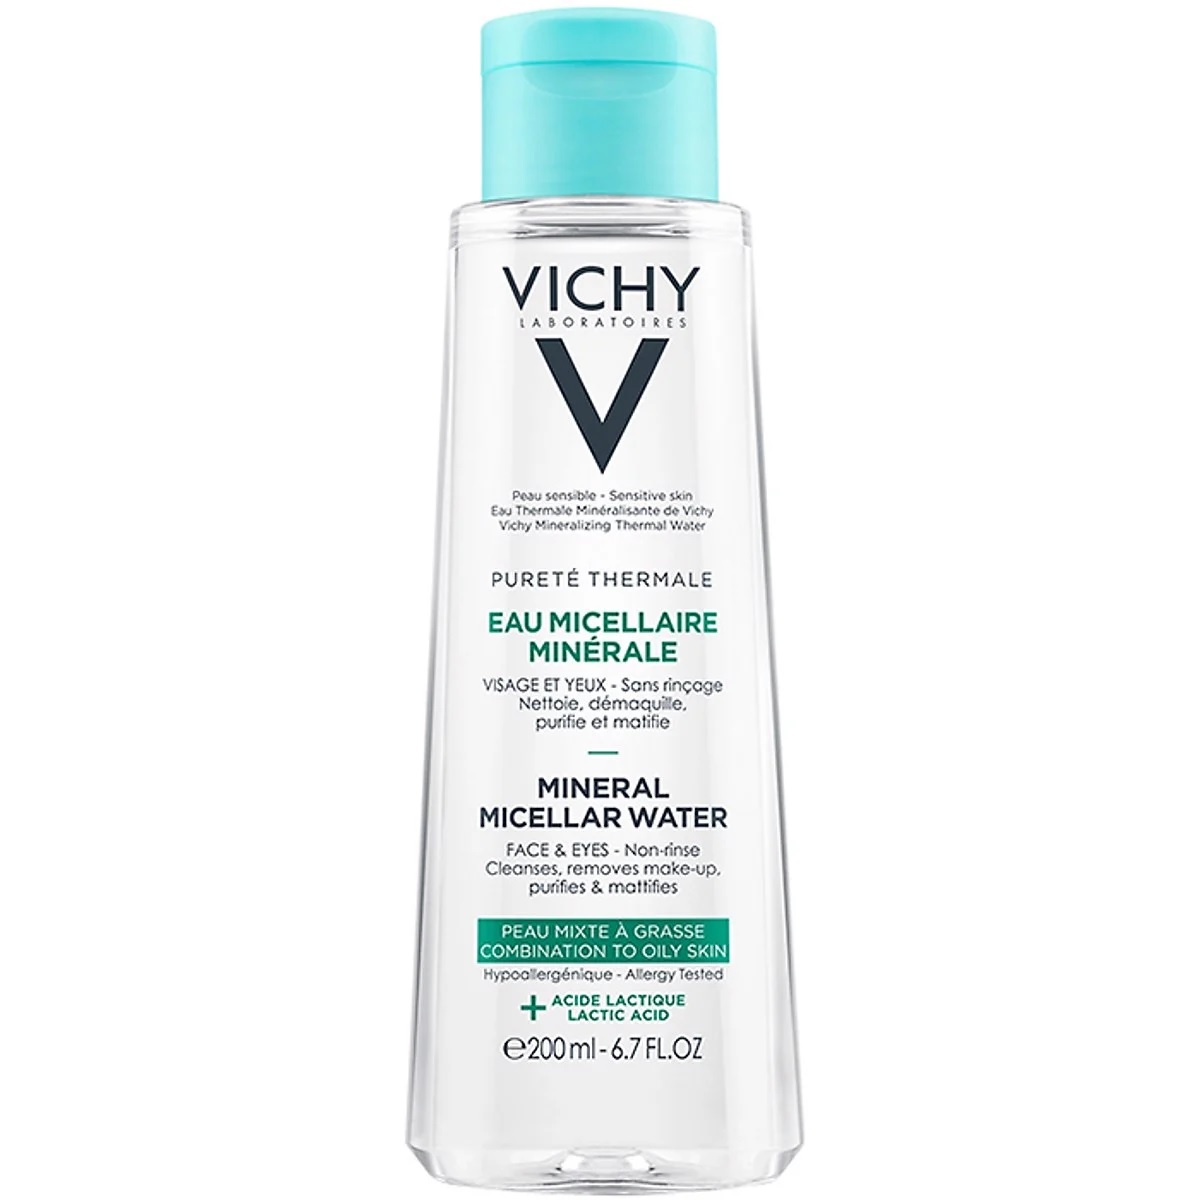 nuoc-tay-trang-vichy-mineral-micellar-water-combination-to-oily-skin-review-thanh-phan-gia-cong-dung